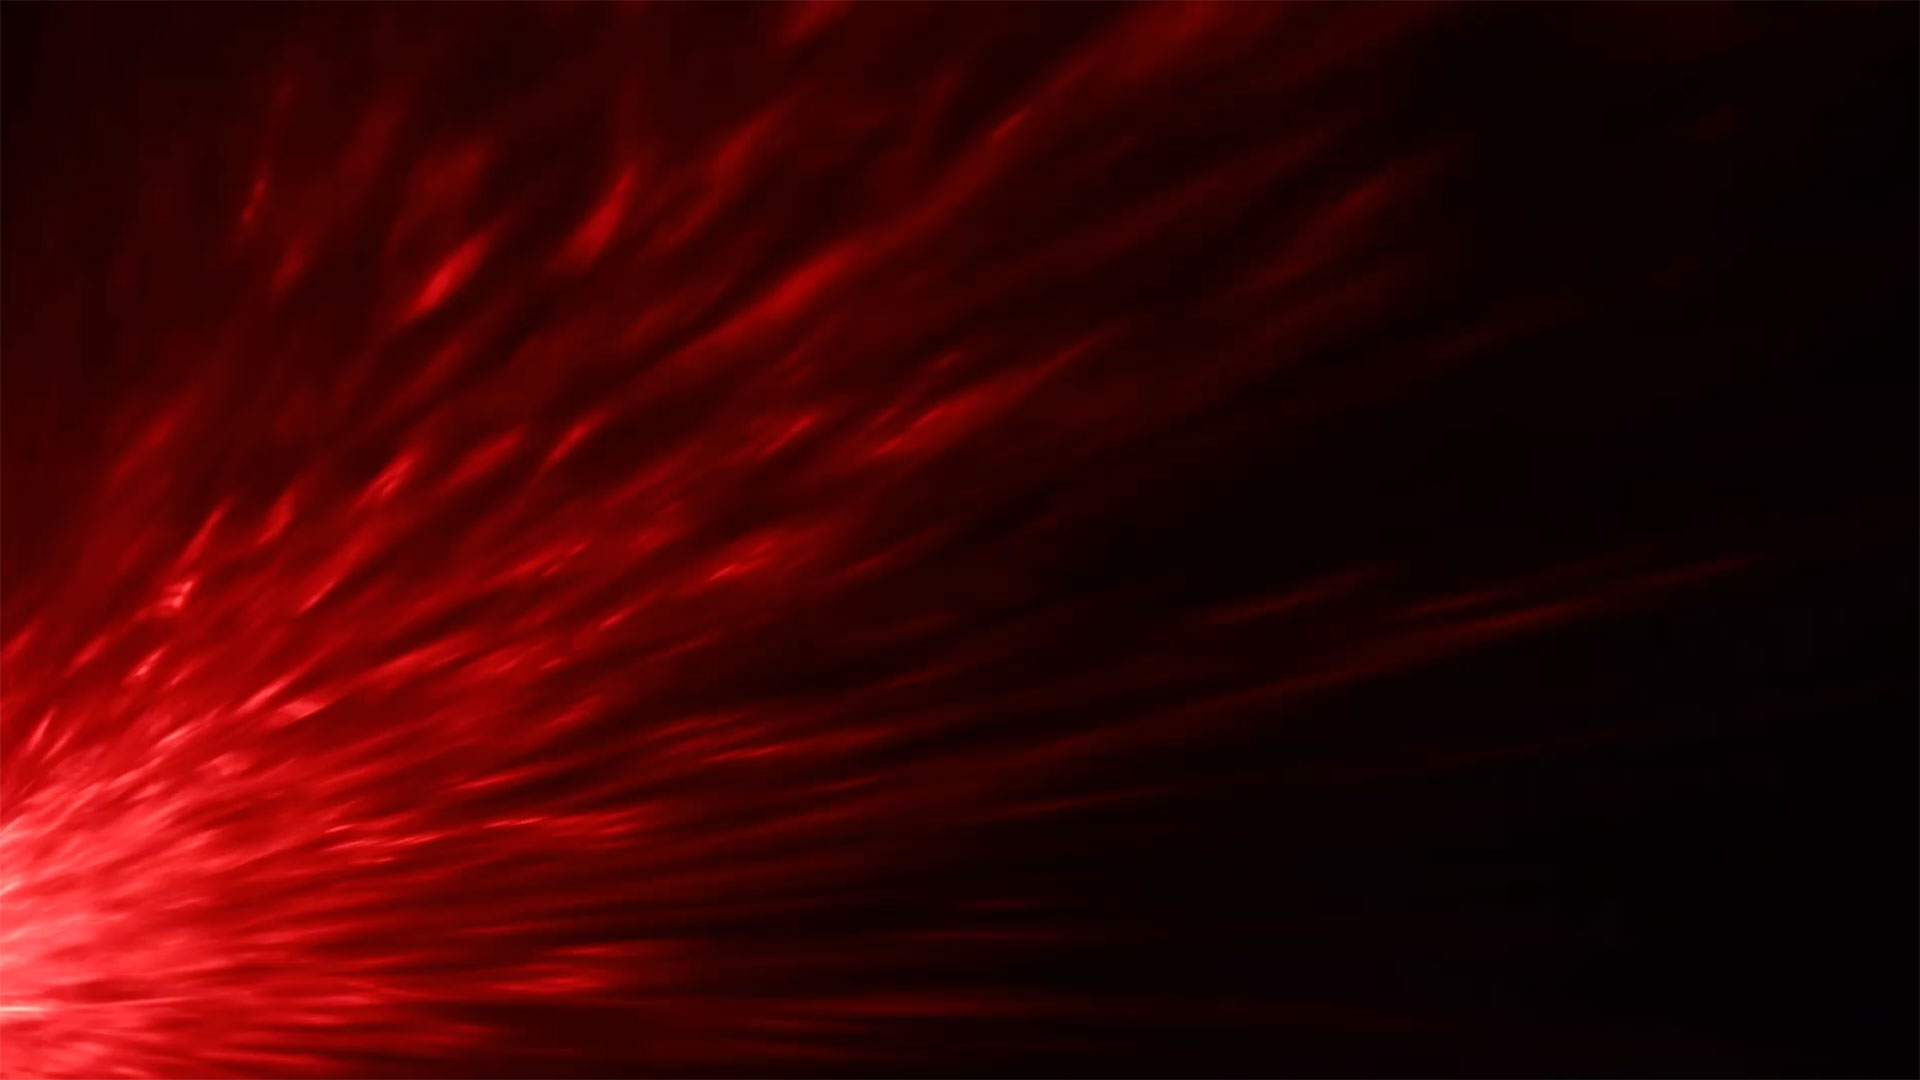 Flashing Red Light On Black Background Loop Musictruth Background Videos